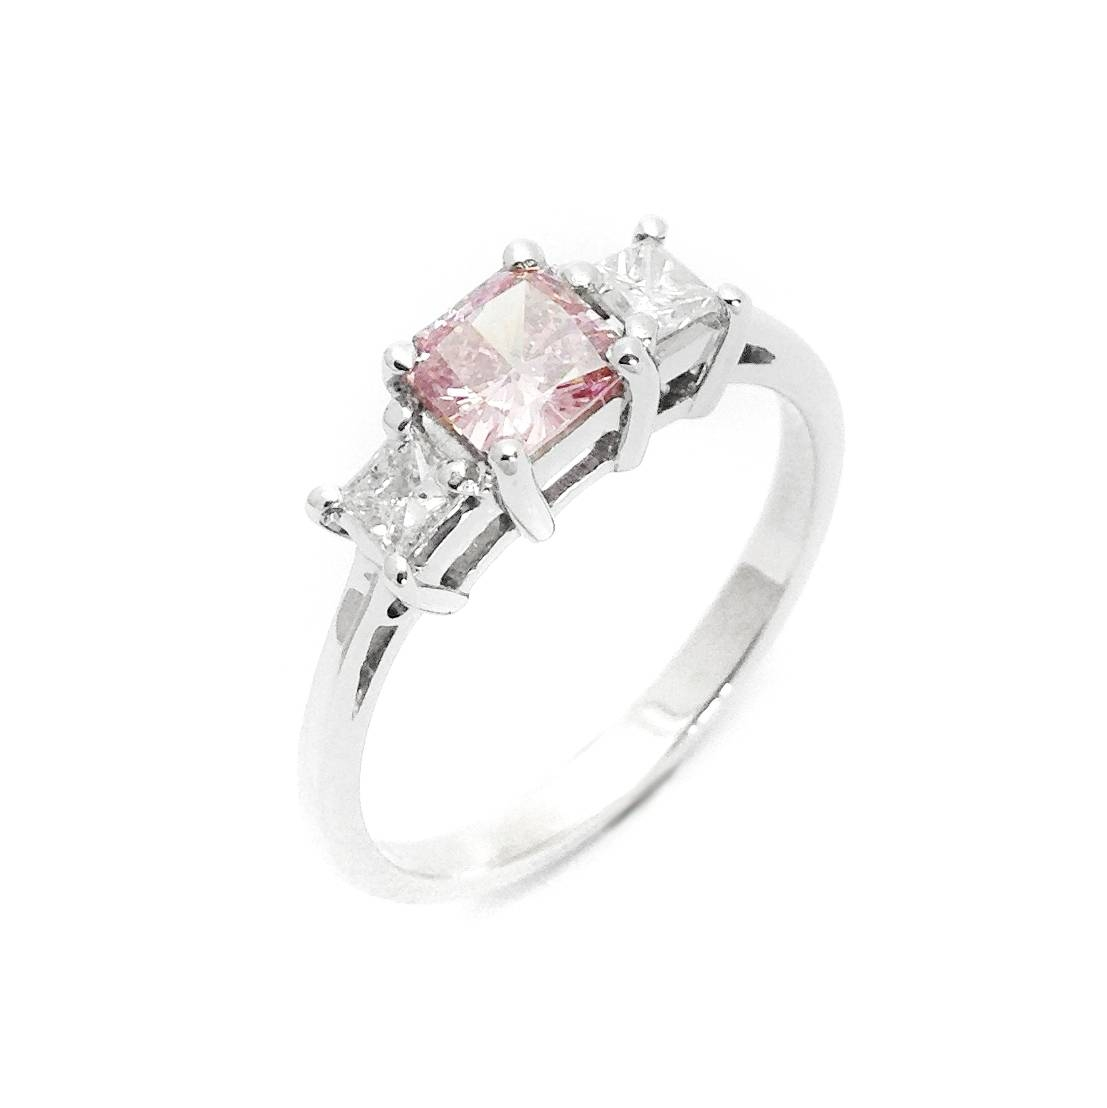 Pink Diamond Flower Engagement Ring With Pink And Diamond Engagement Rings (View 12 of 15)